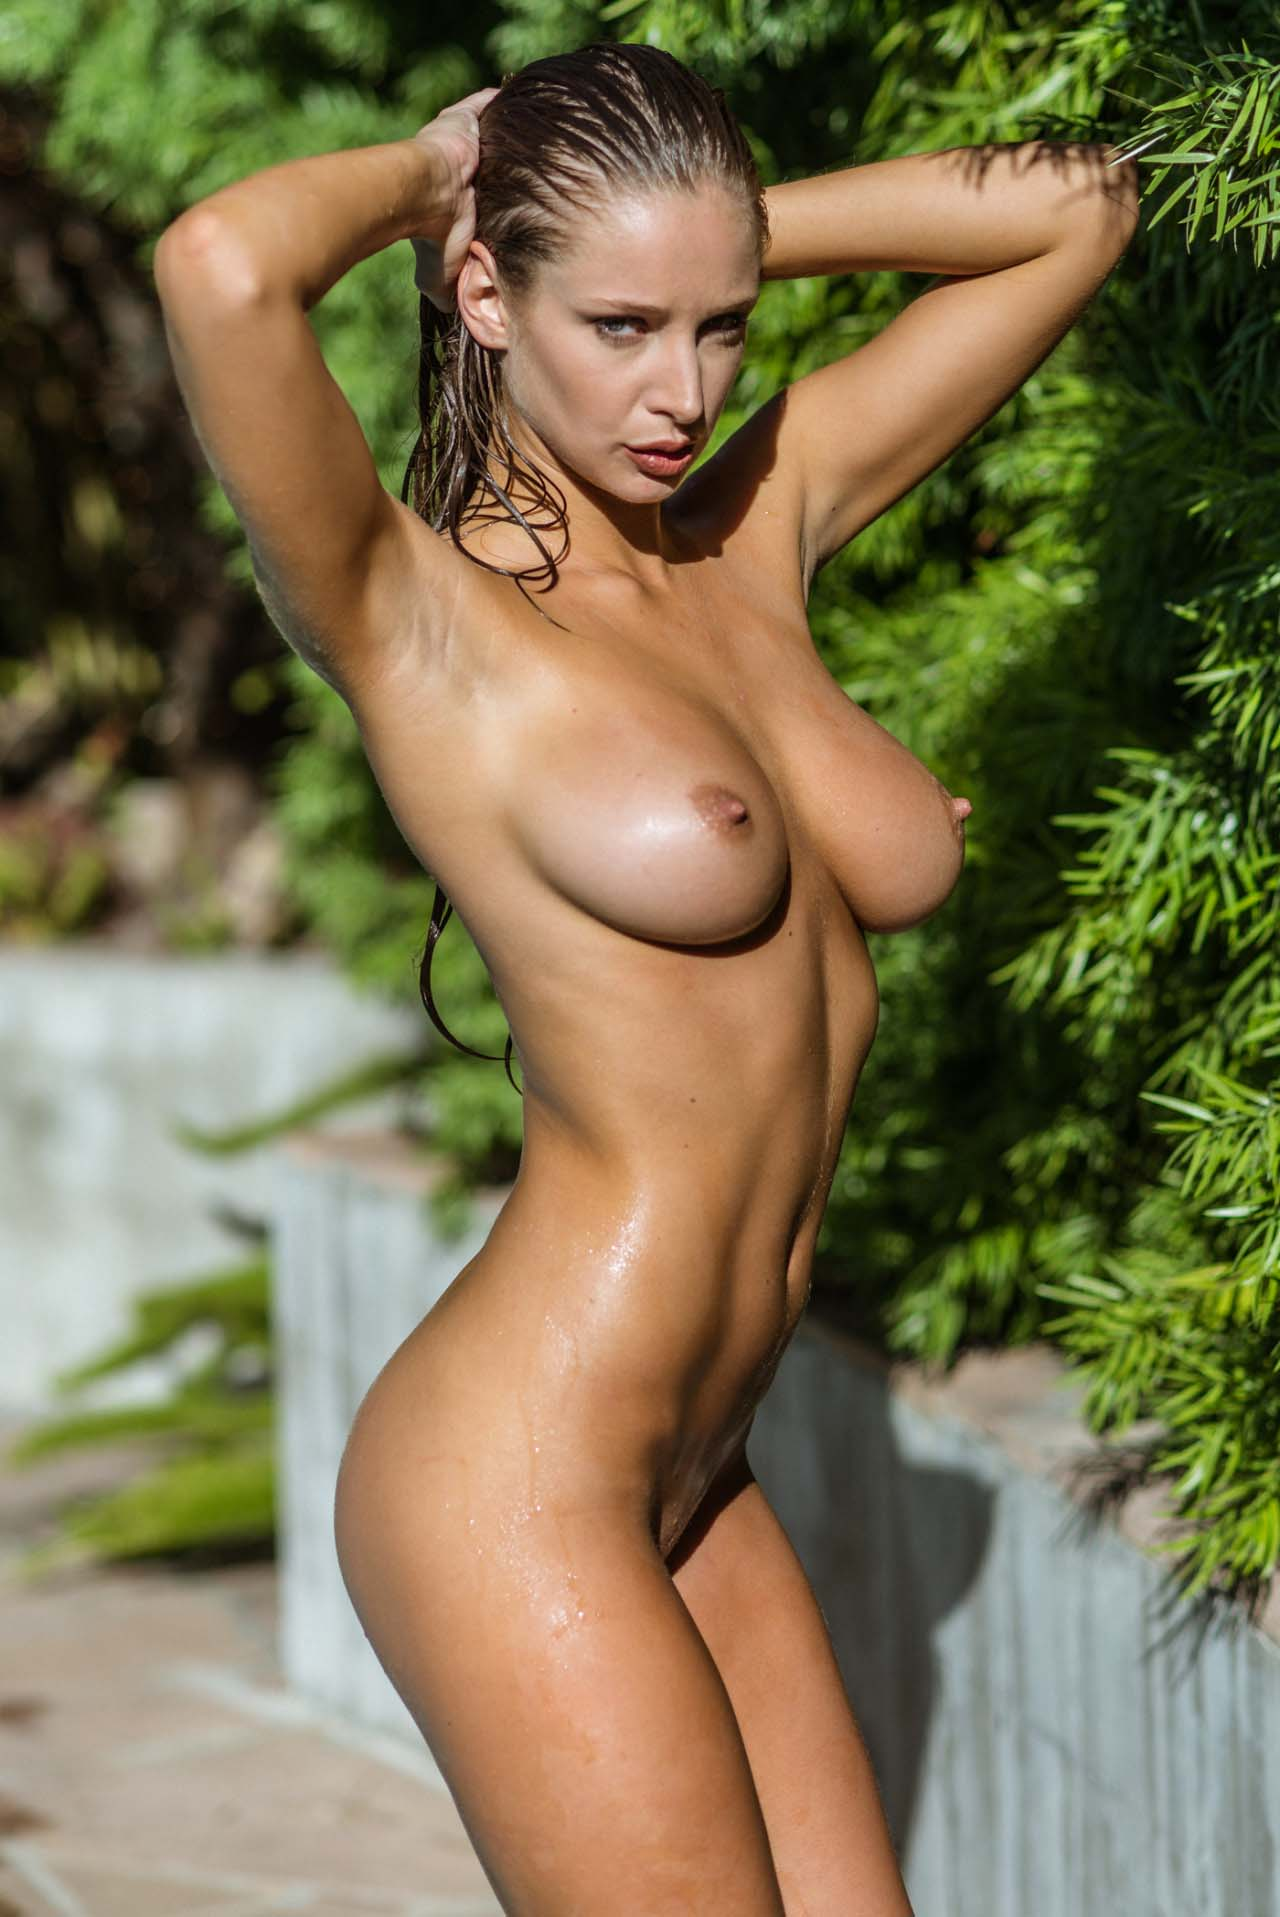 girls-nude-in-pool-wet-photo-mix-vol6-24